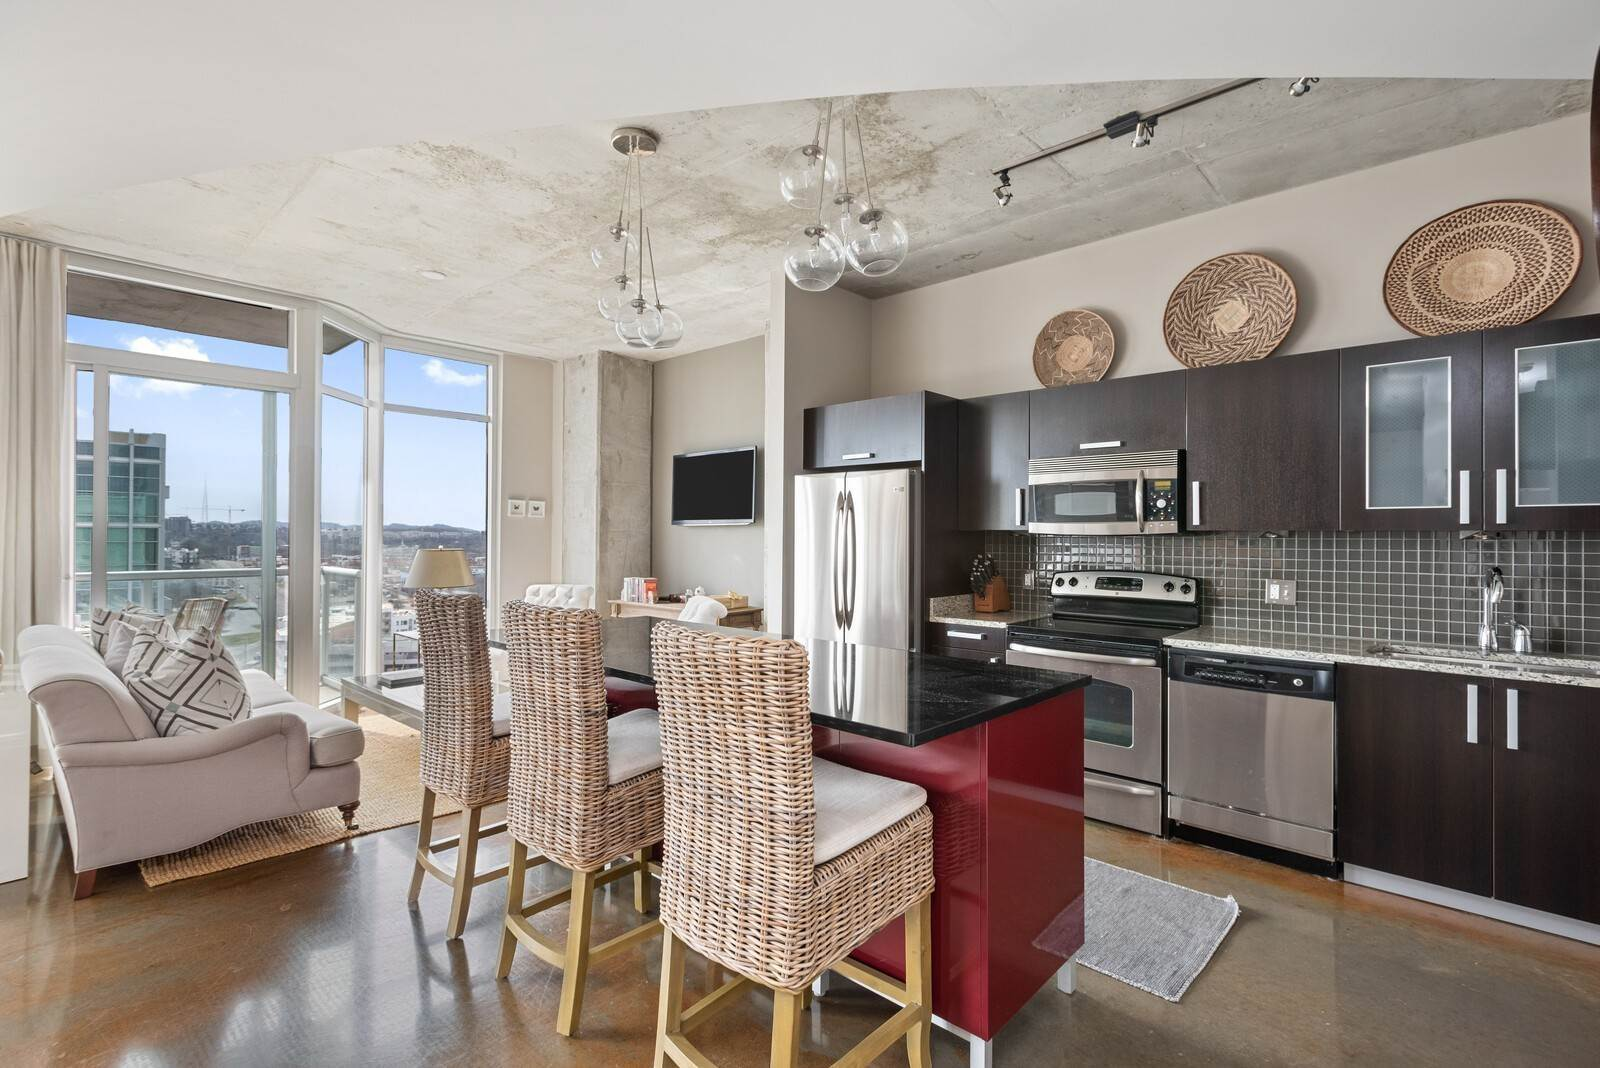 6. High Rise for Sale at 600 12th Ave, S Nashville, Tennessee 37203 United States